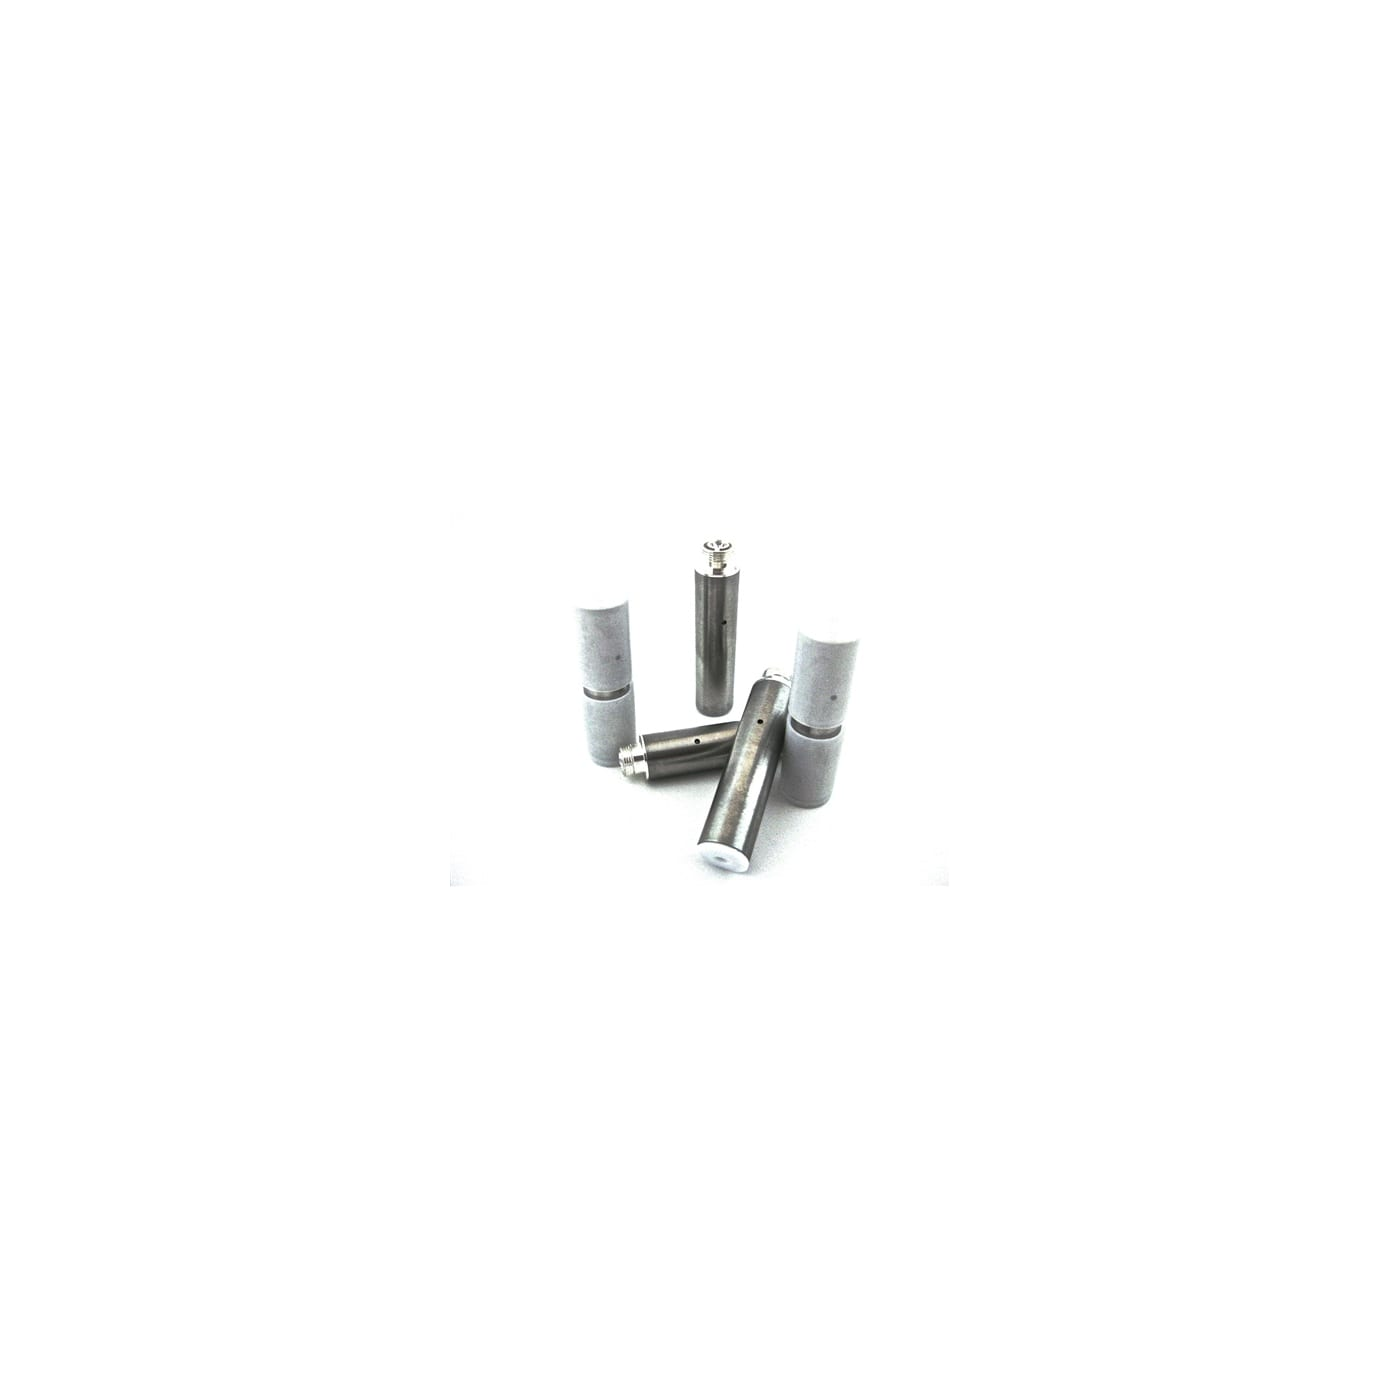 Boge Pre Punched Cartomizer 5 Pack - Stainless